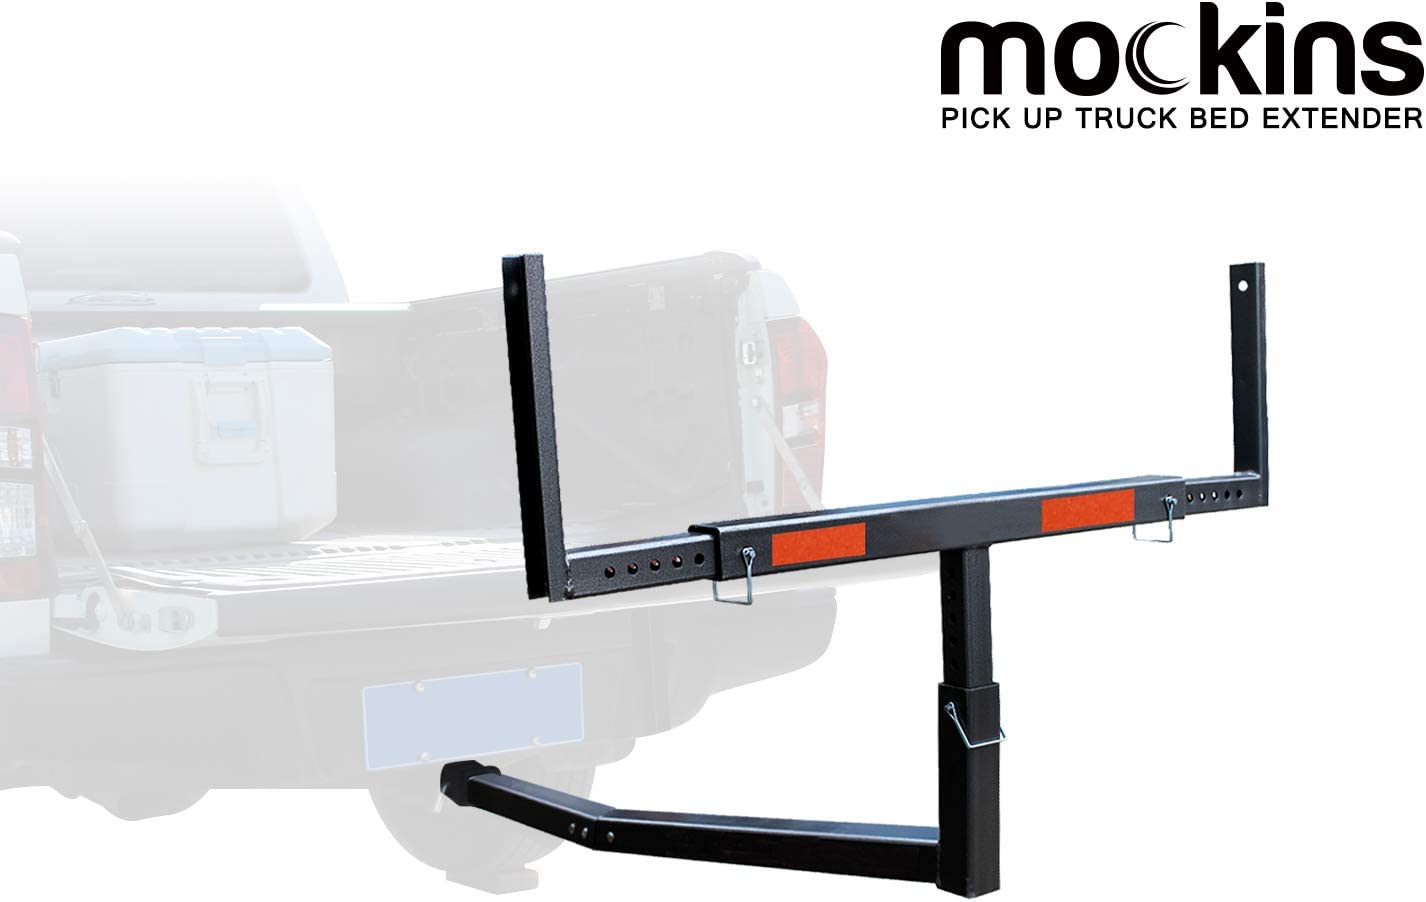 Mockins Heavy Duty Steel Pick Up Truck Bed Extender with Ratchet Straps | The Hitch Mount Truck Bed Extension can be Used for Lumber or a Ladder or a Canoe & Kayak - Black